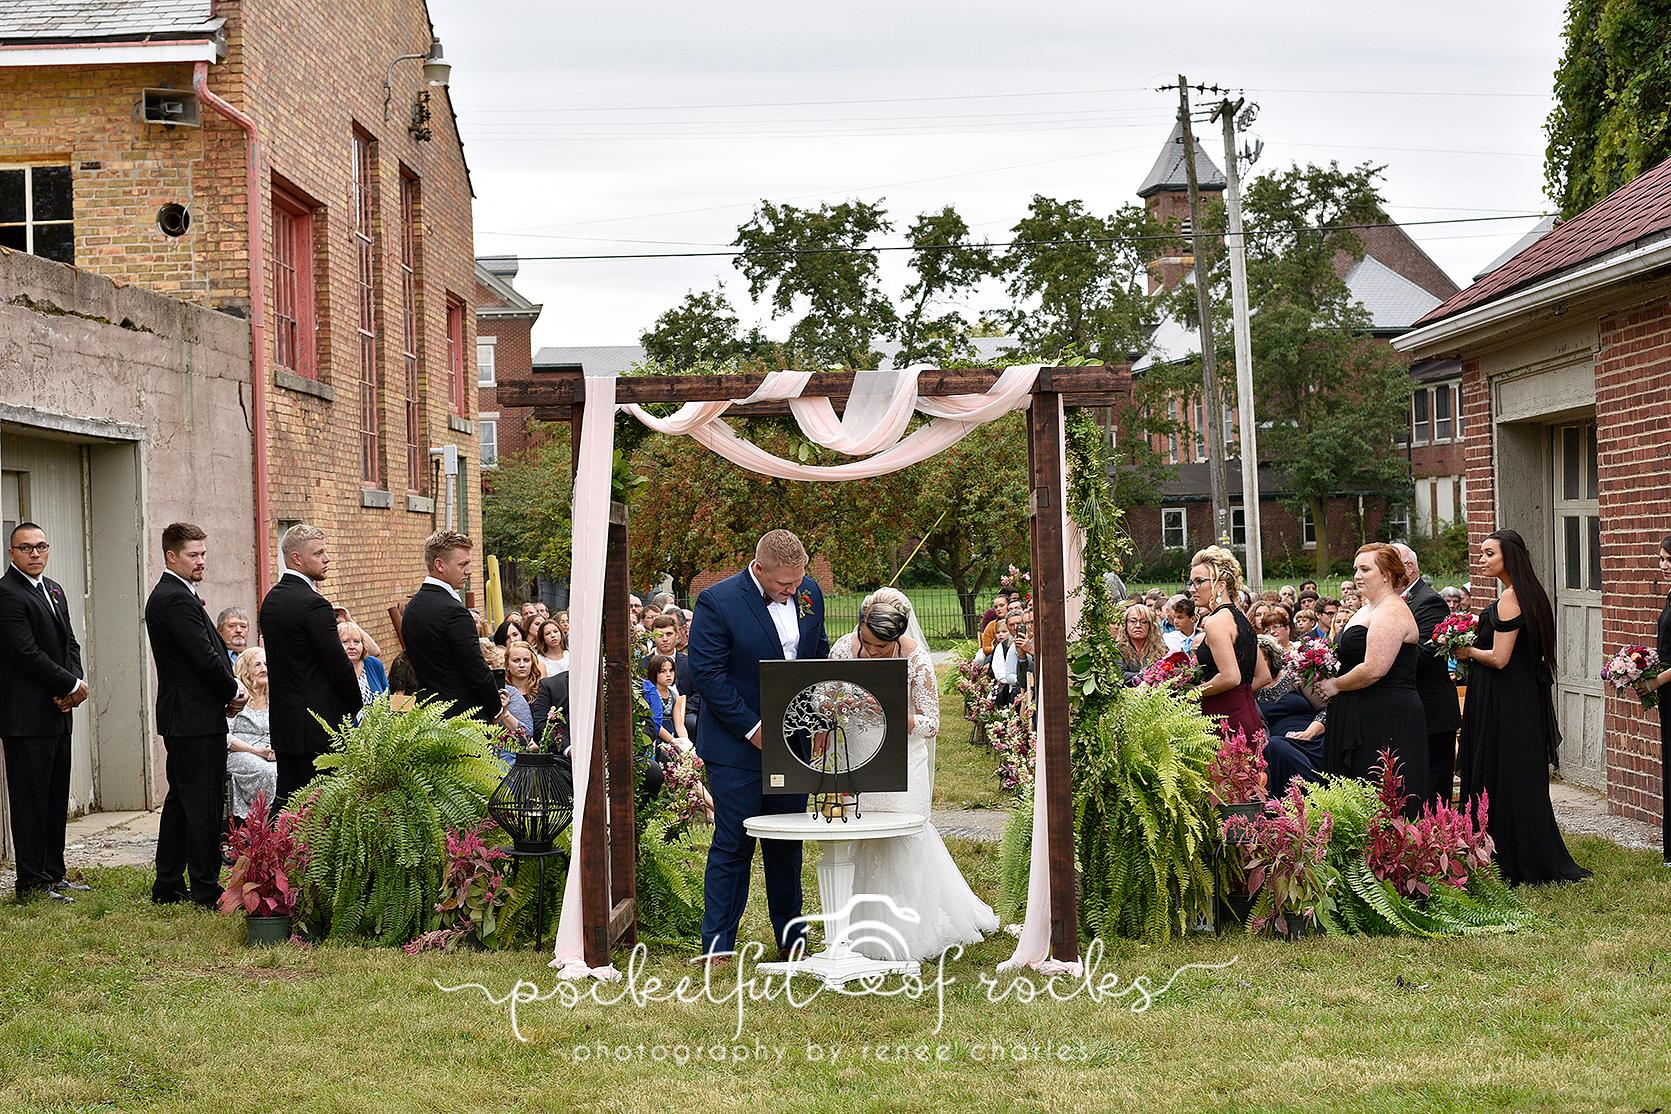 Sylvan Cellars Outdoor Wedding Ceremony